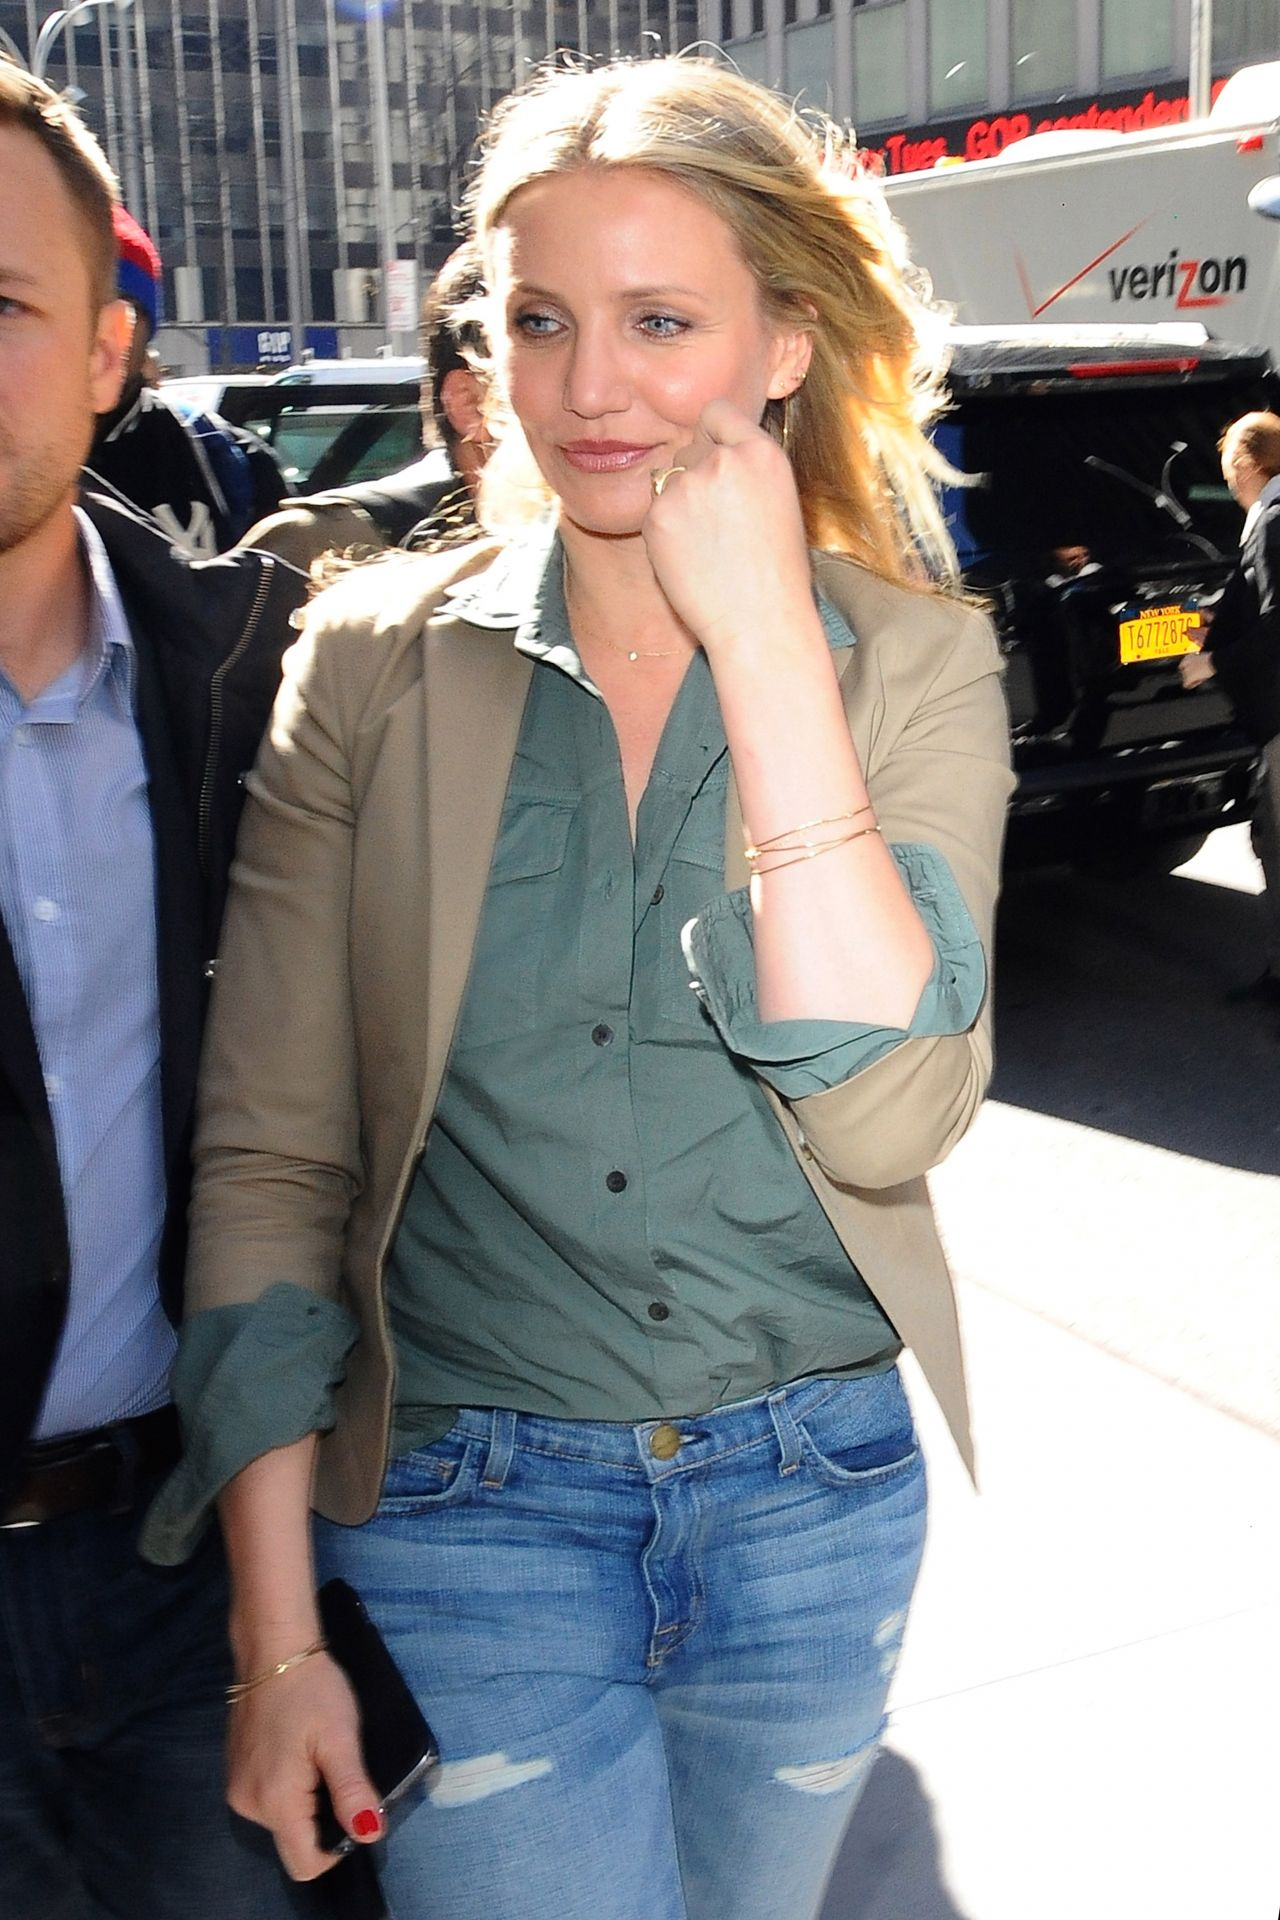 Cameron Diaz Looking Stylish - Arriving at Z100 in New ... Cameron Diaz